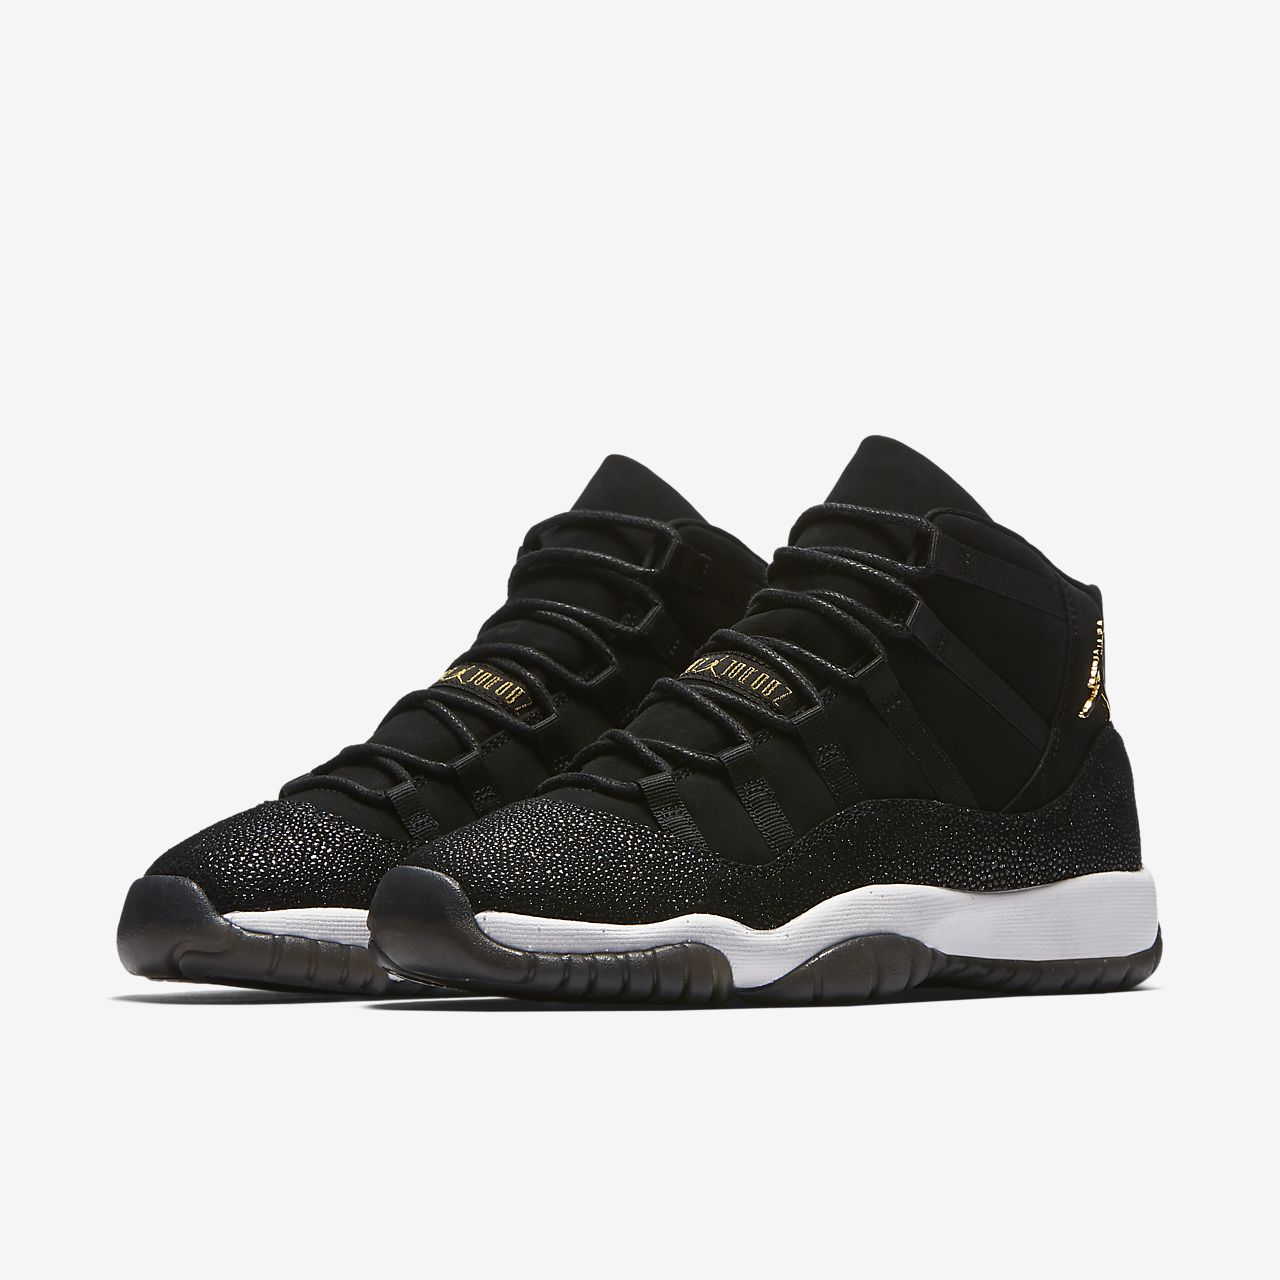 ... Air Jordan 11 Retro Women's Shoe